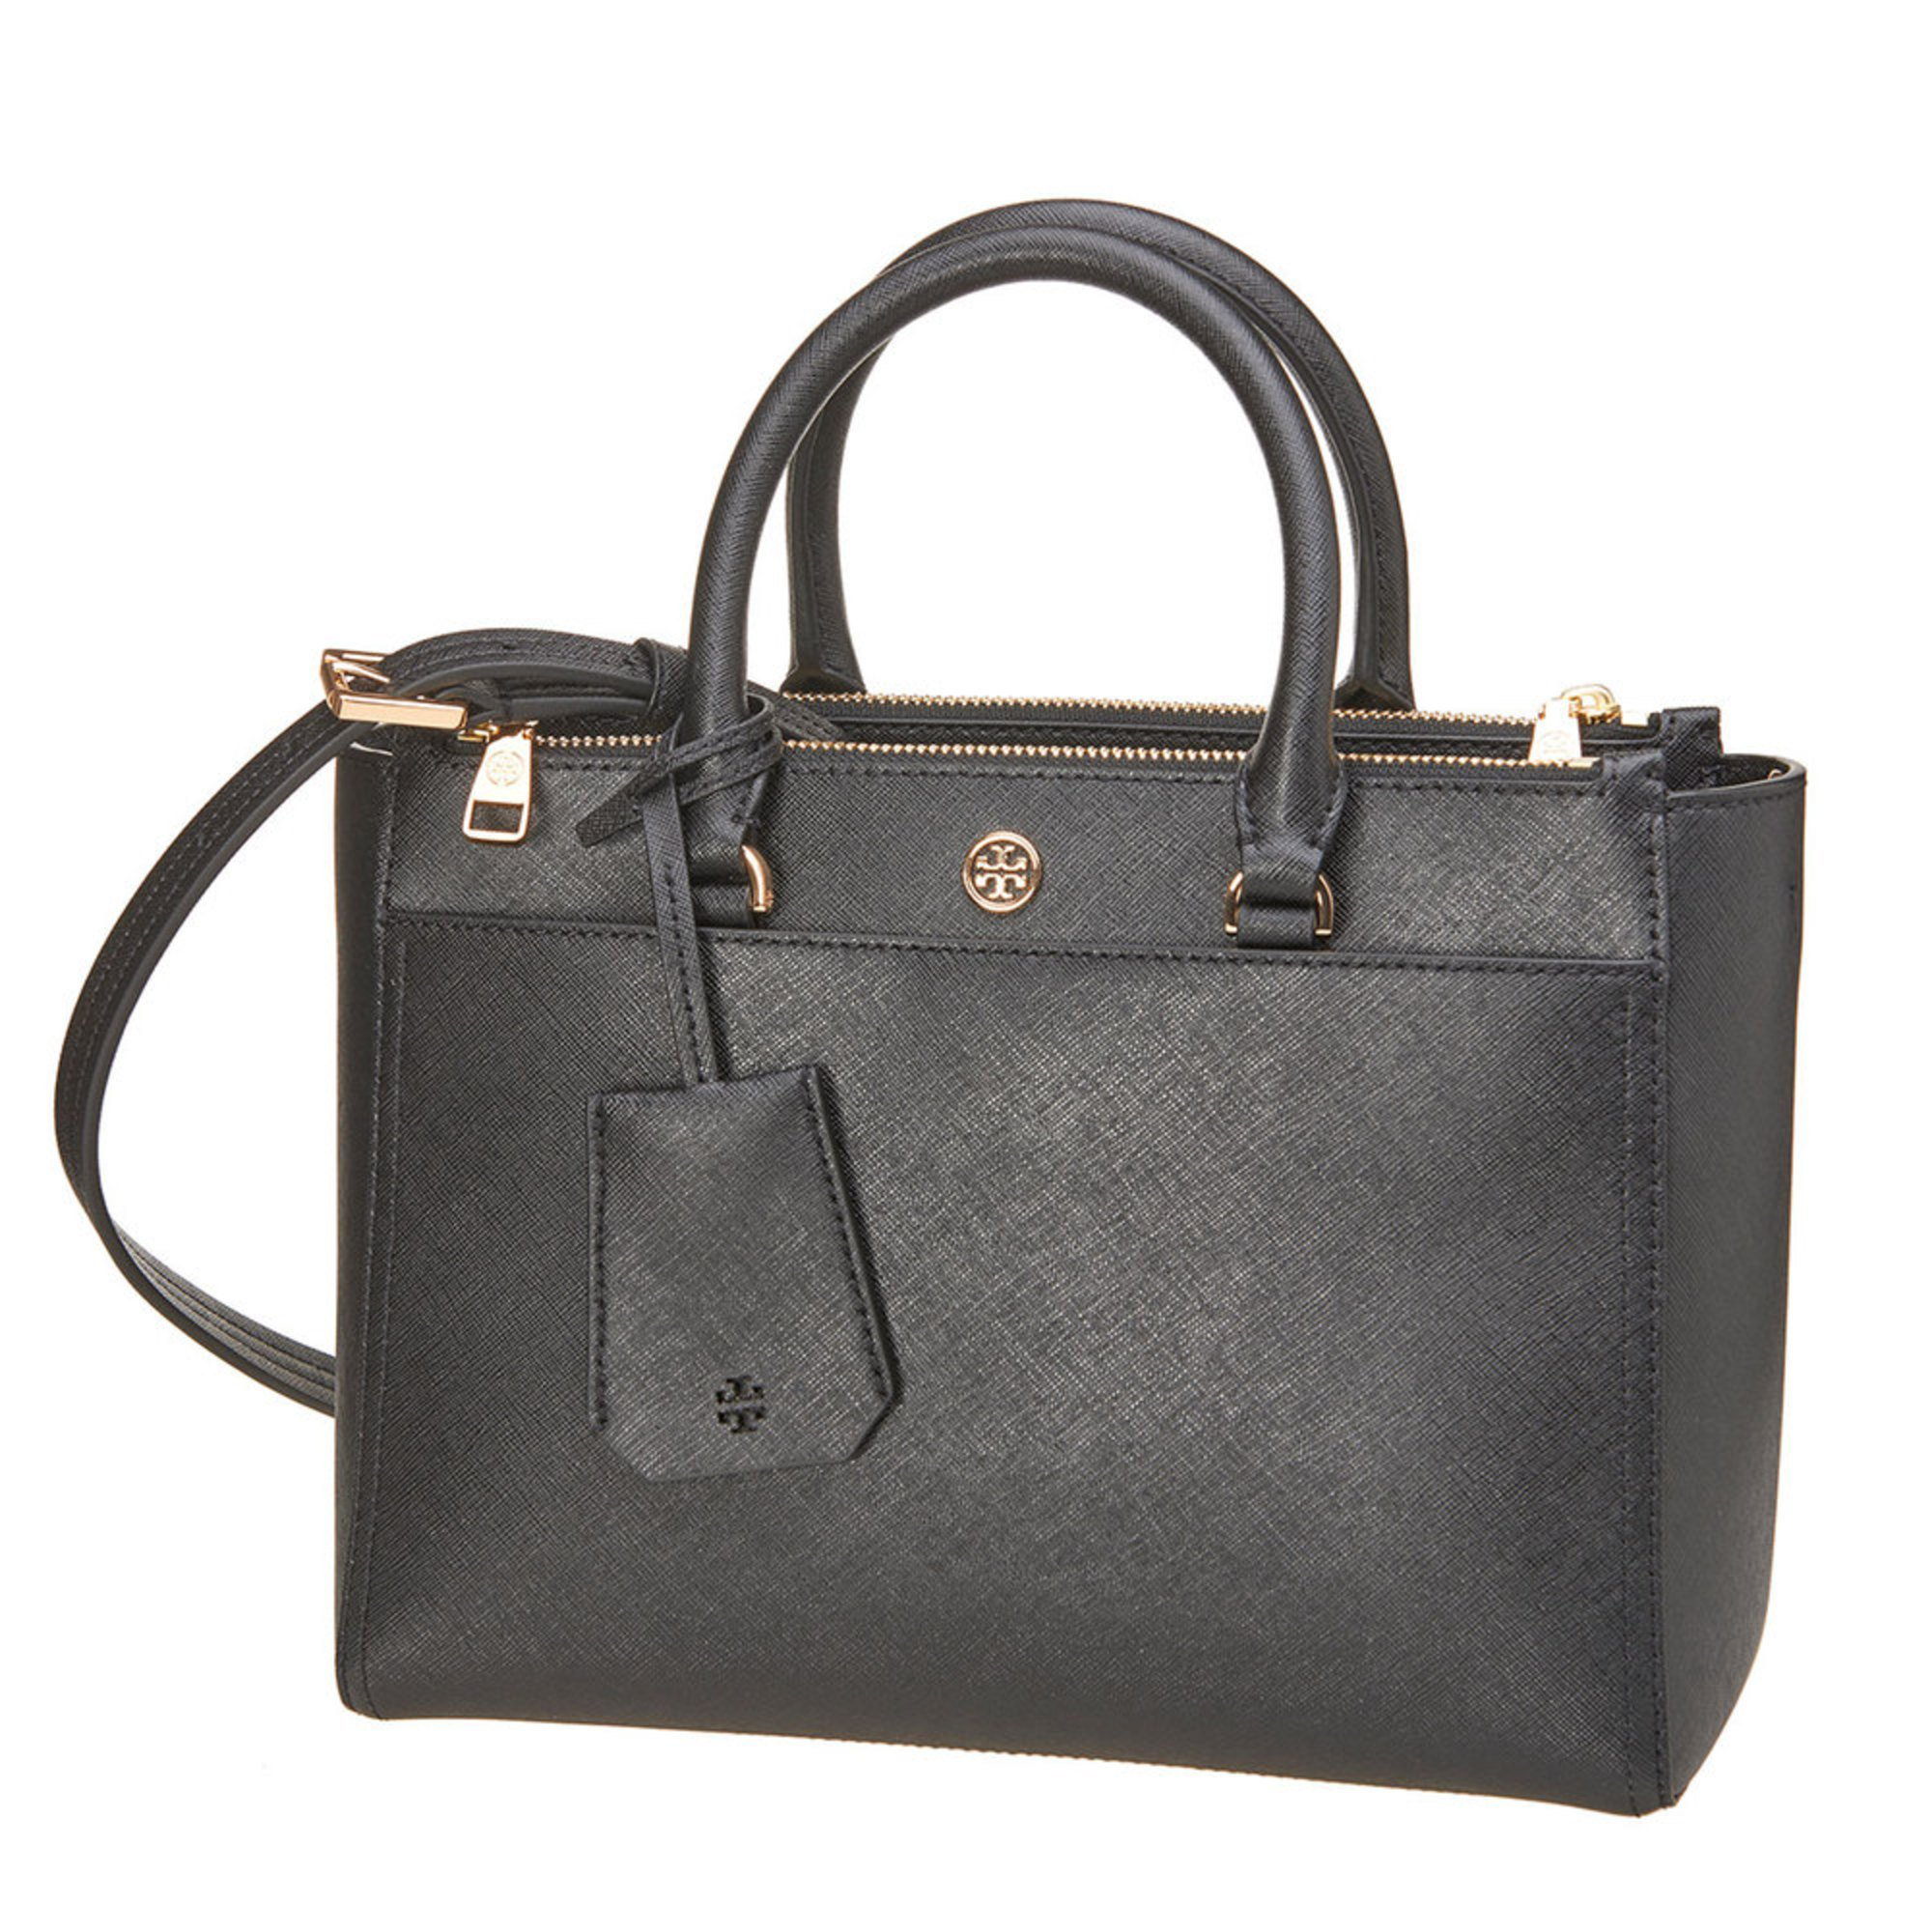 e36f9a616a Tory Burch Robinson Small Double Zip Tote Black/royal Navy   Totes ...